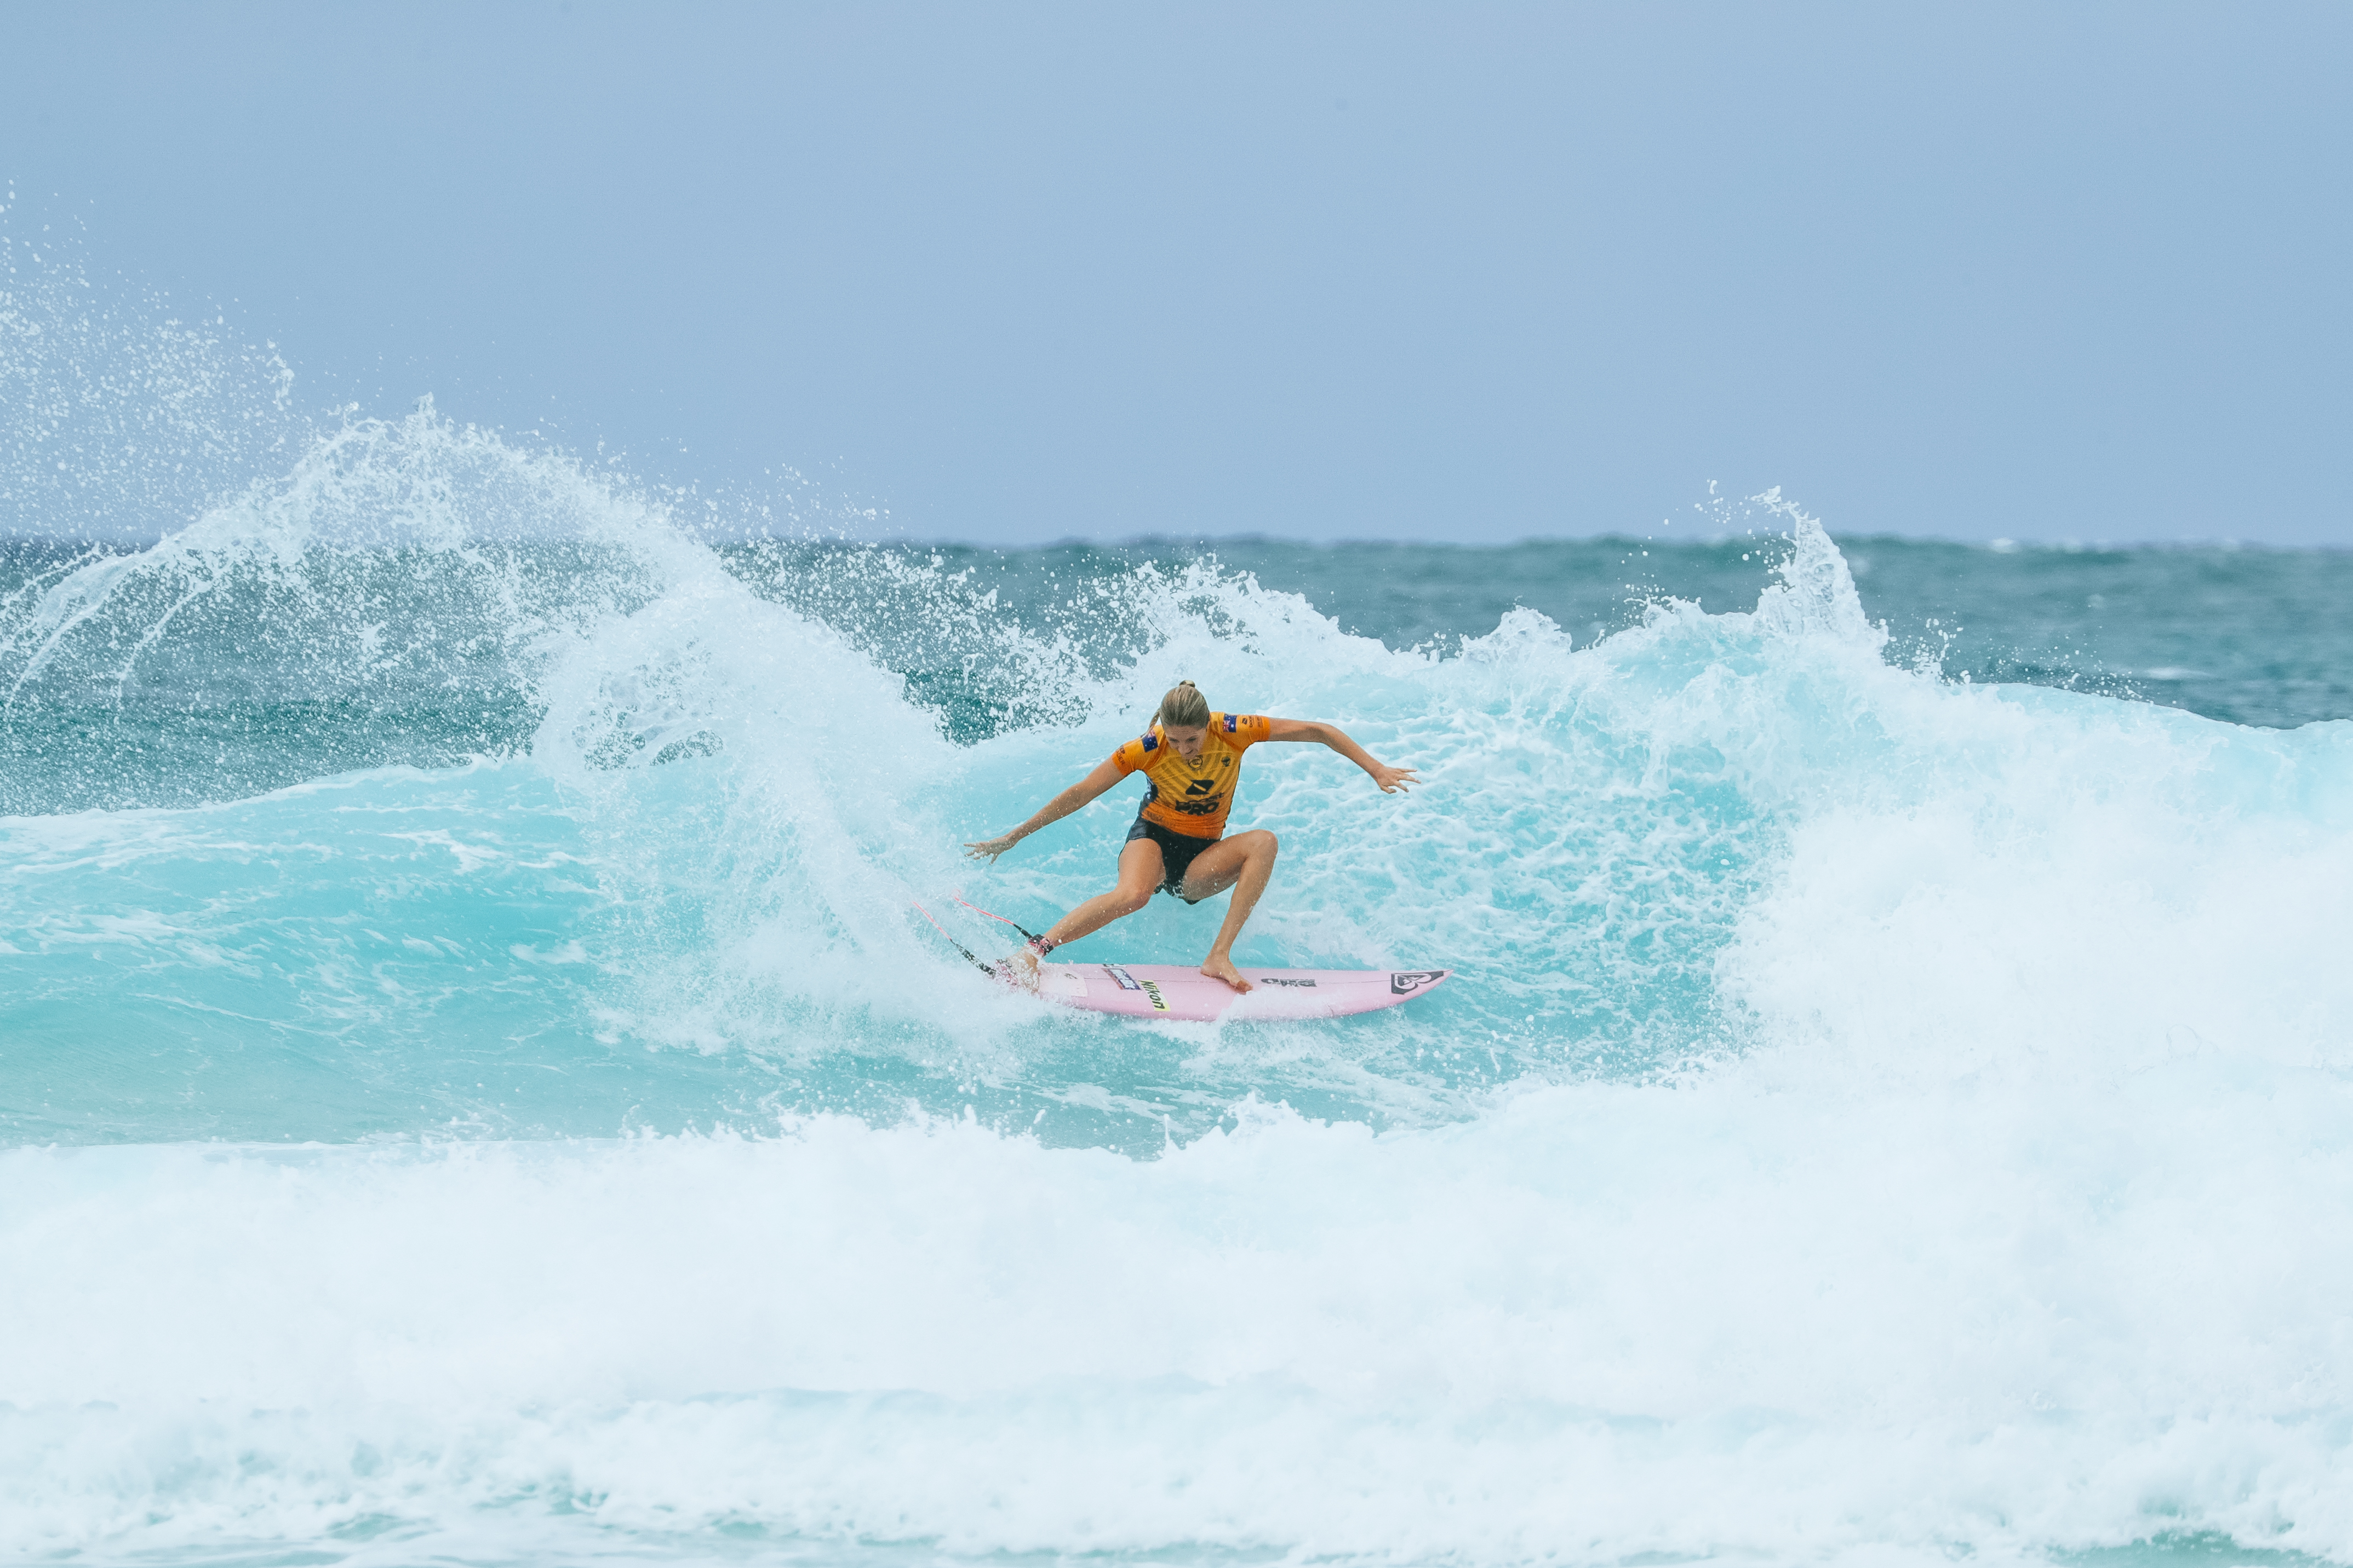 QUEENSLAND, AUSTRALIA - APRIL 5: 7X World Champion Stephanie Gilmore of Australia advances to the quarter finals of the 2019 Boost Mobile Pro Gold Coast after winning Heat 1 of Round 3 at Snapper Rocks on April 5, 2019 in Queensland, Australia. (Photo by Kelly Cestari/WSL via Getty Images)